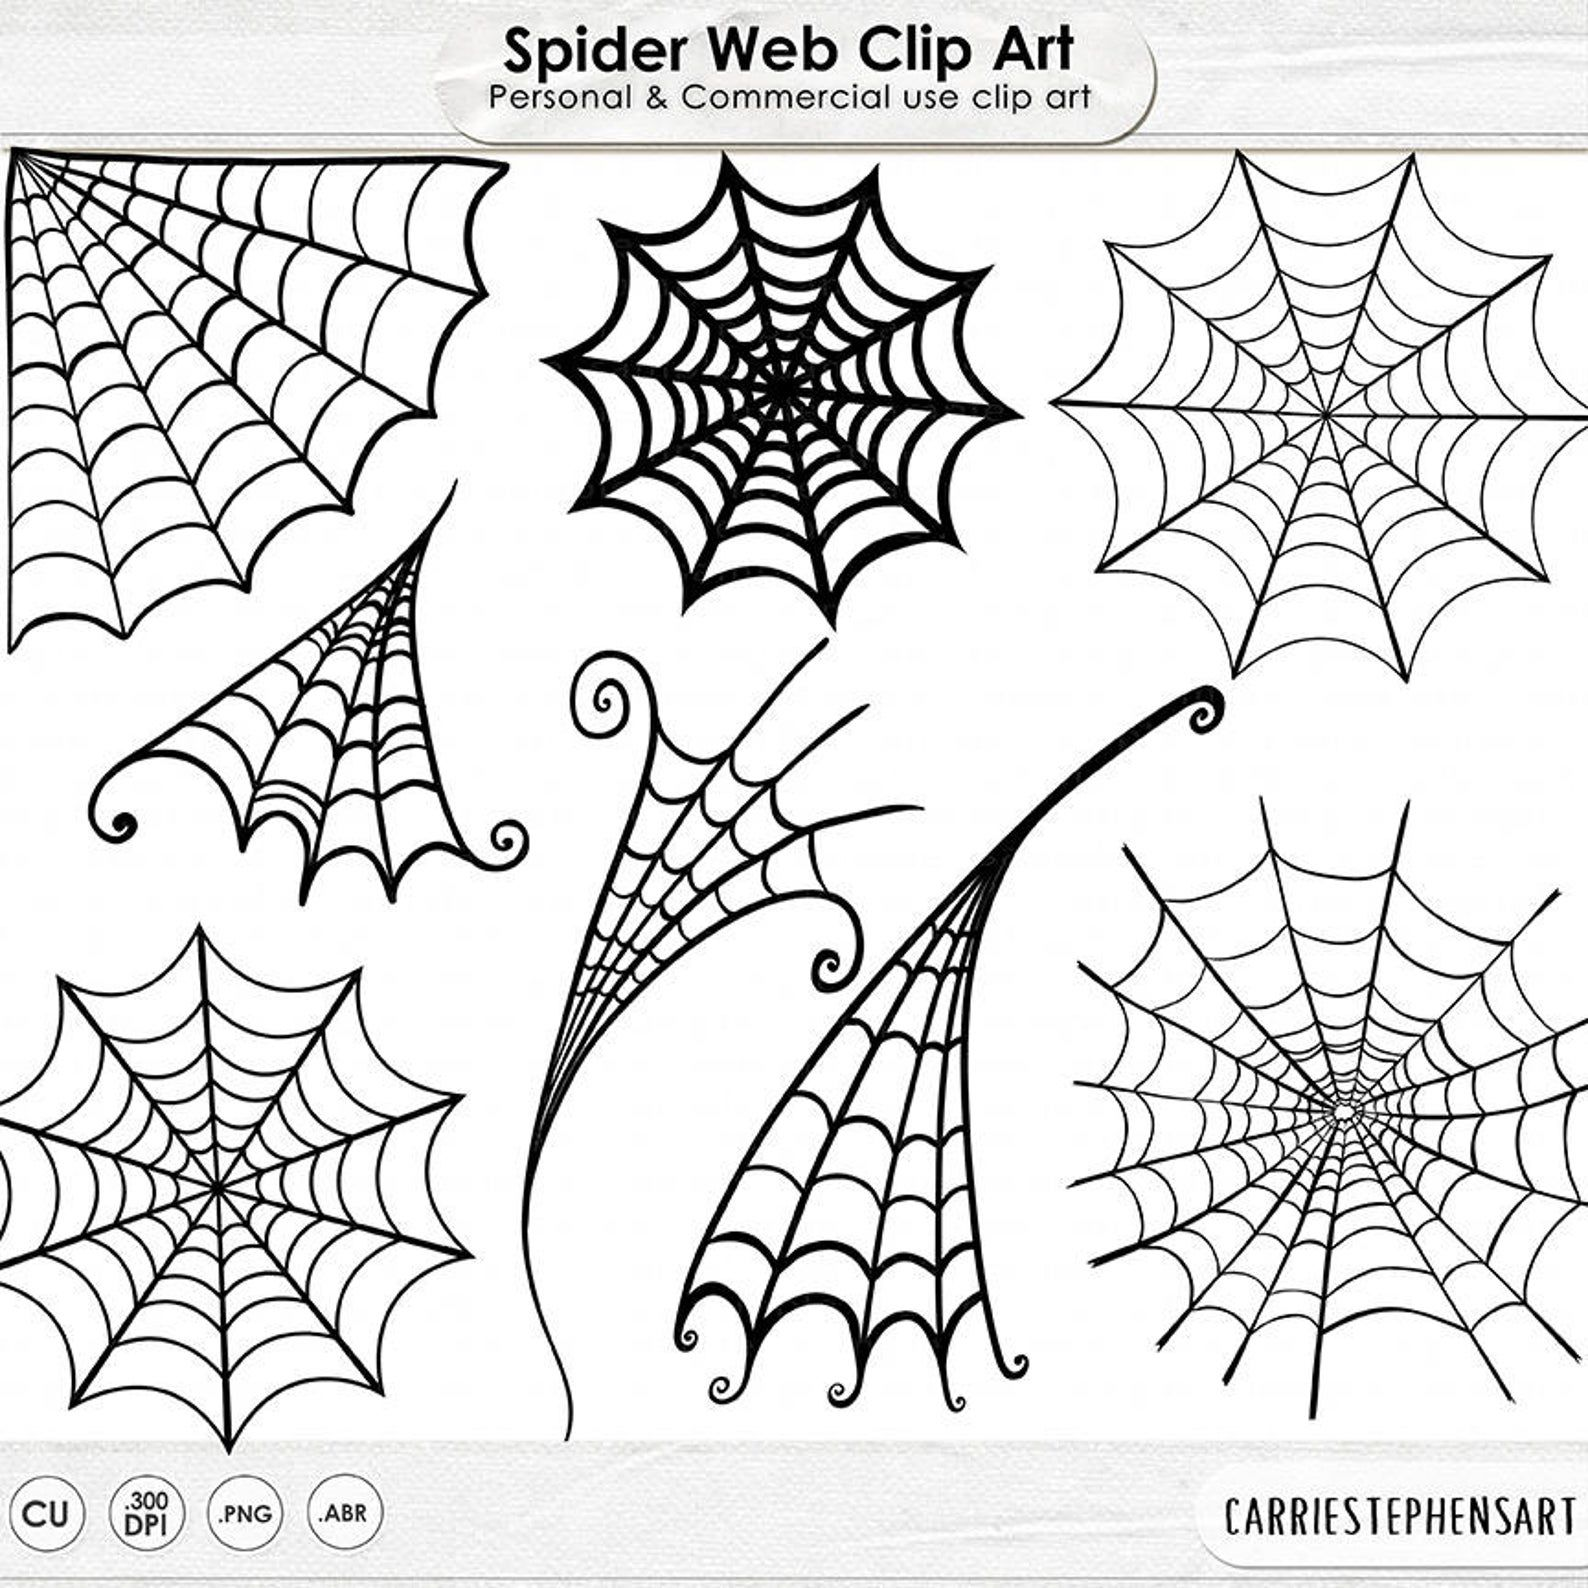 Spider Web Clip Art Spooky Halloween Clip Art Digital Stamps Etsy Spider Web Drawing Spider Web Tattoo Halloween Clips